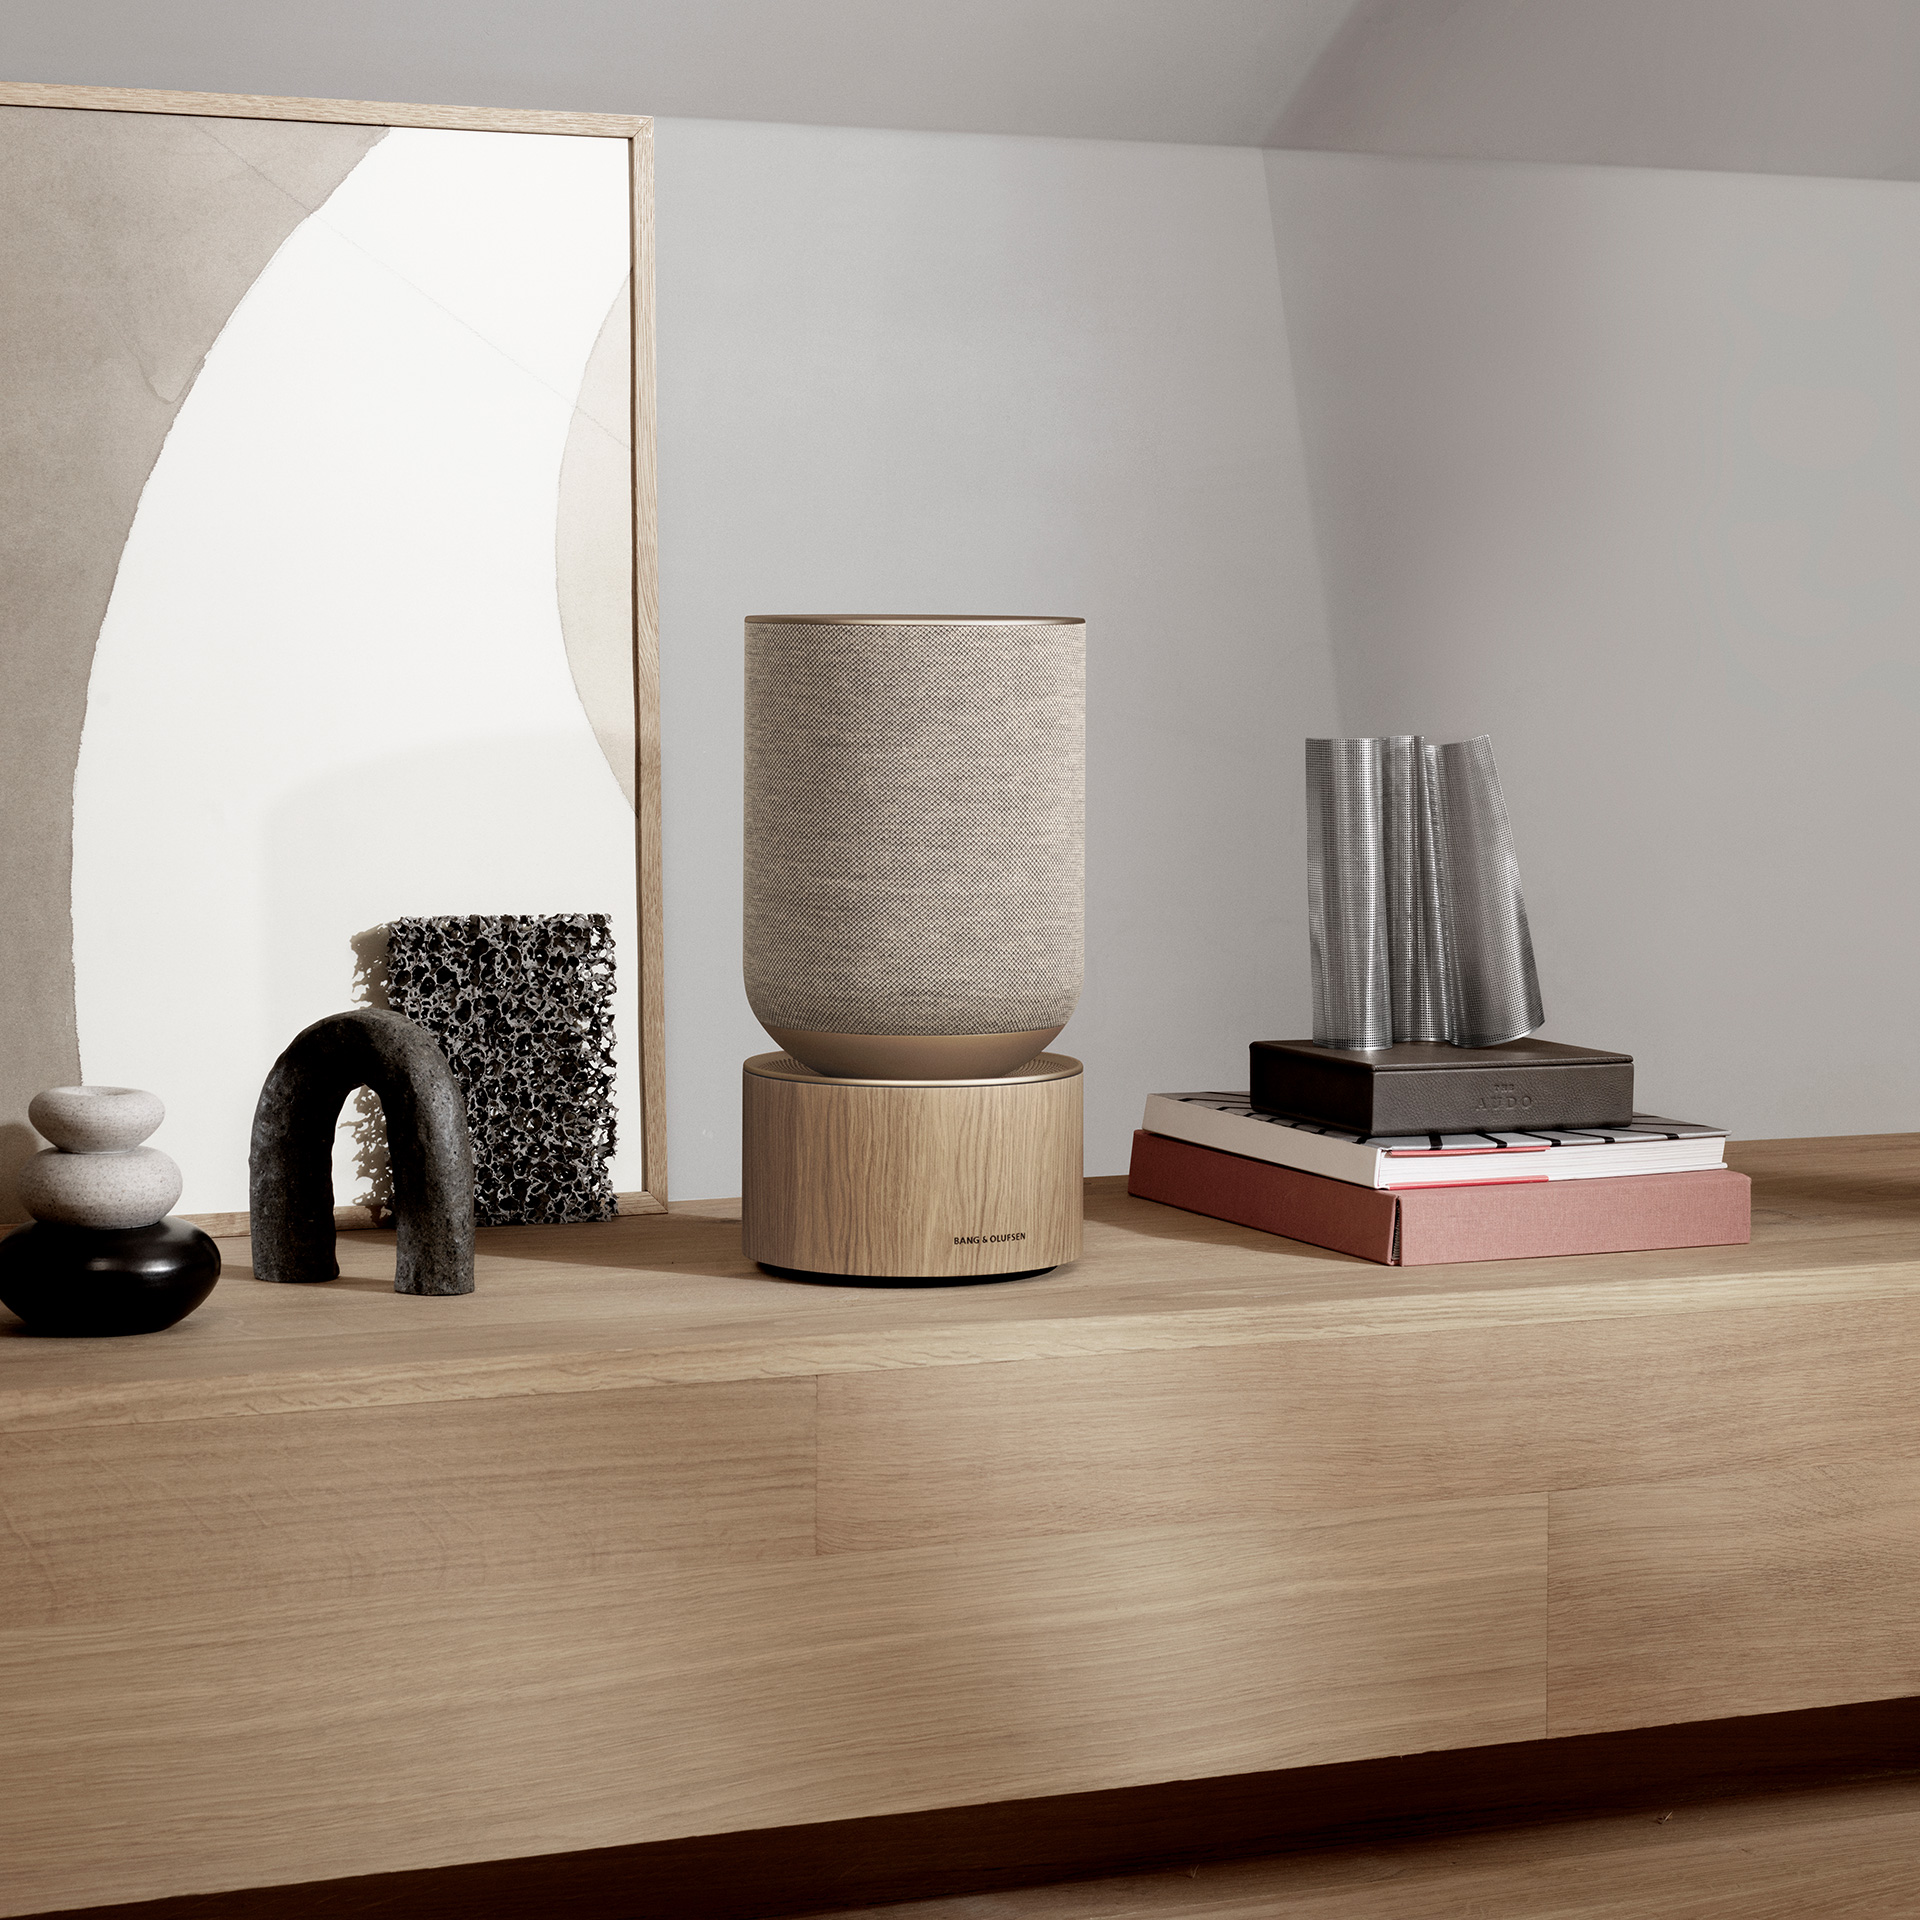 Beosound Balance Natural oak on a wooden shelf